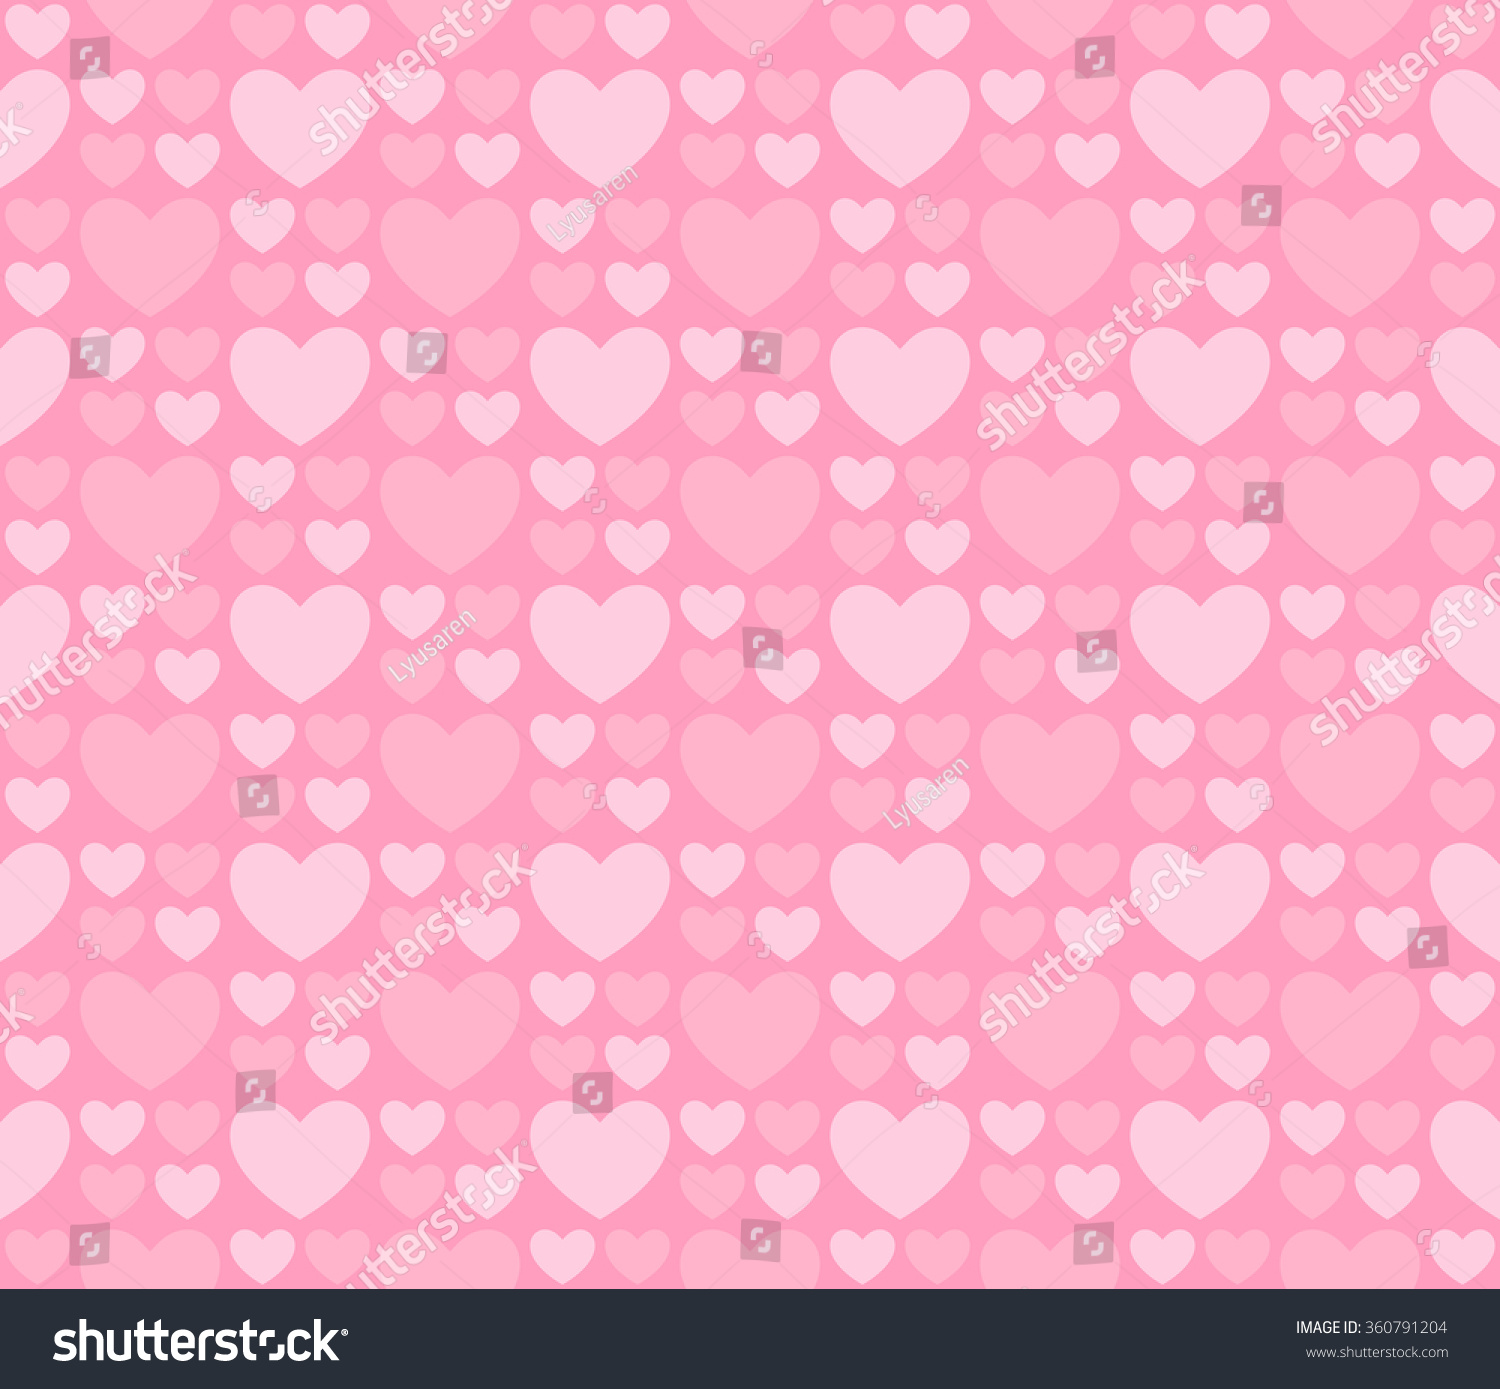 Light Seamless Patterns Hearts Romantic Pink Stock Vector Royalty